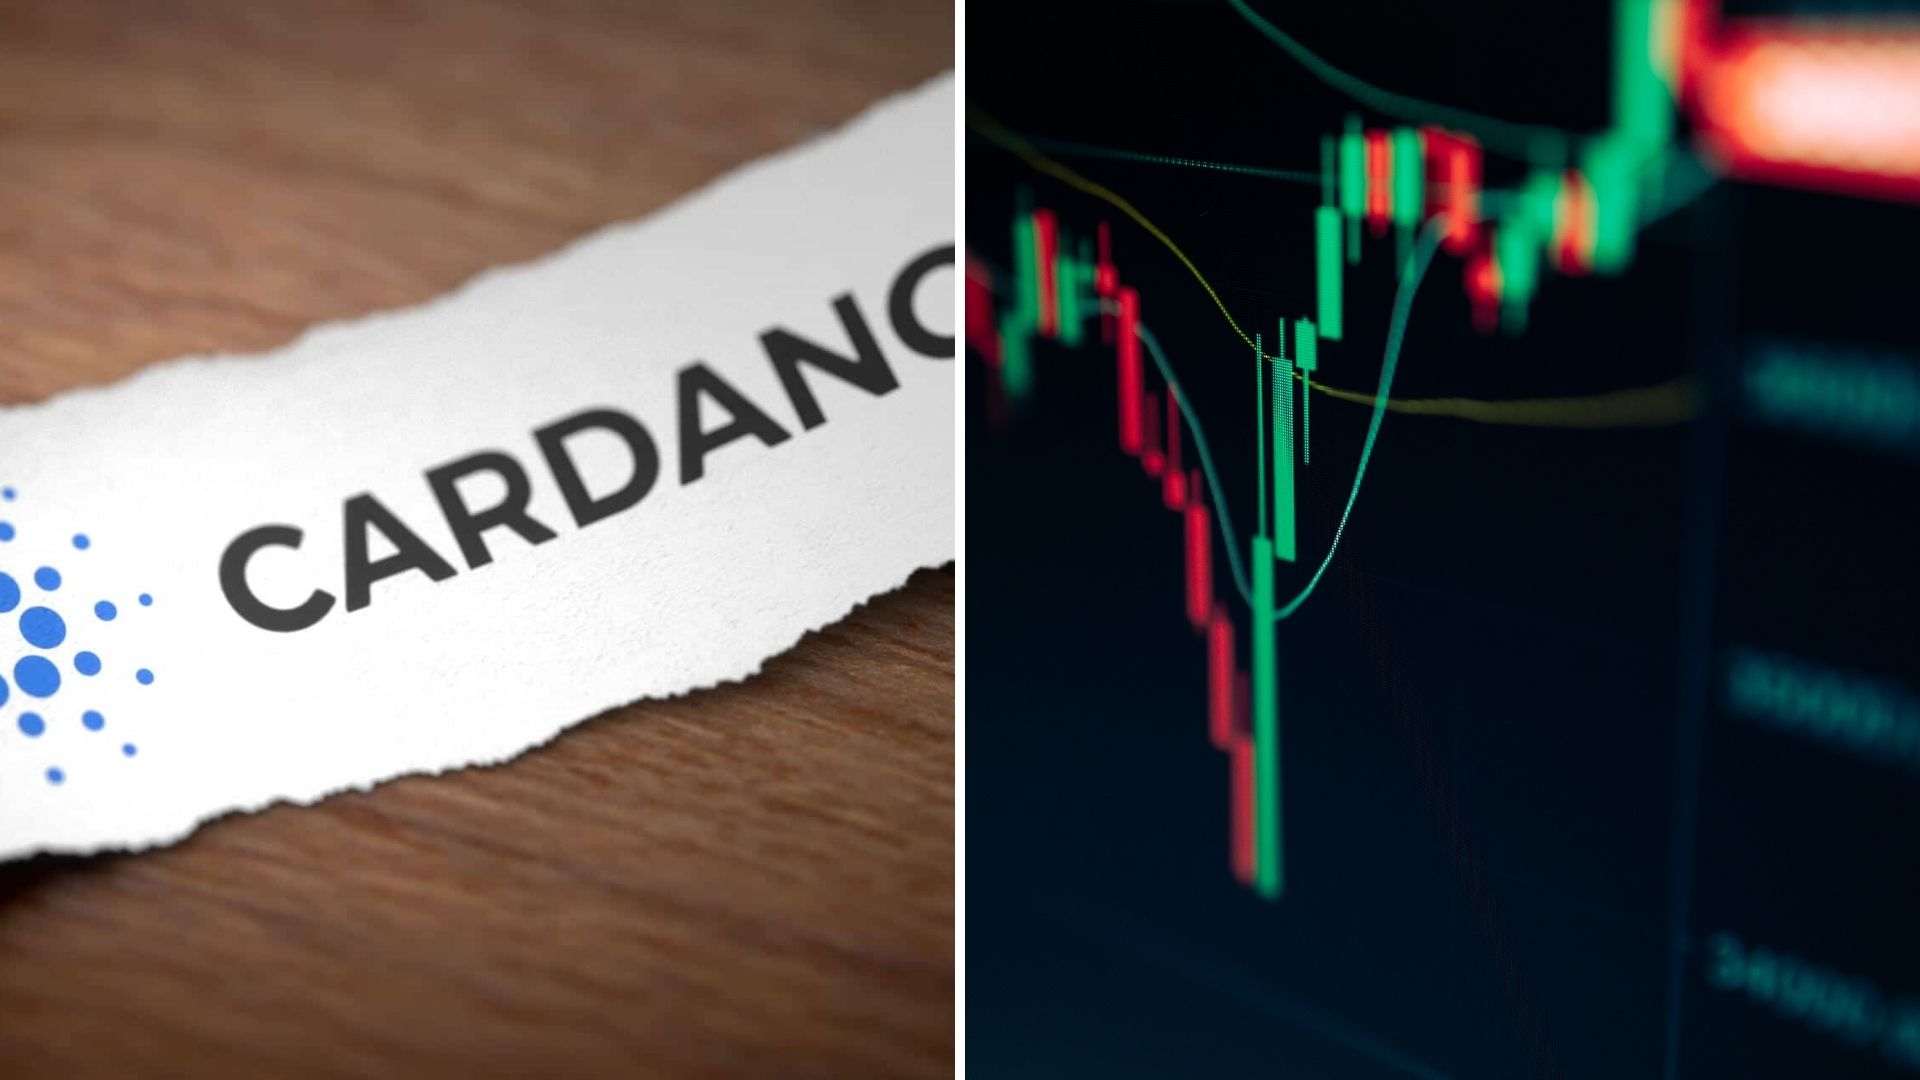 Cardano price (ADA) rises to 2-month high - smart contract update draws ever closer